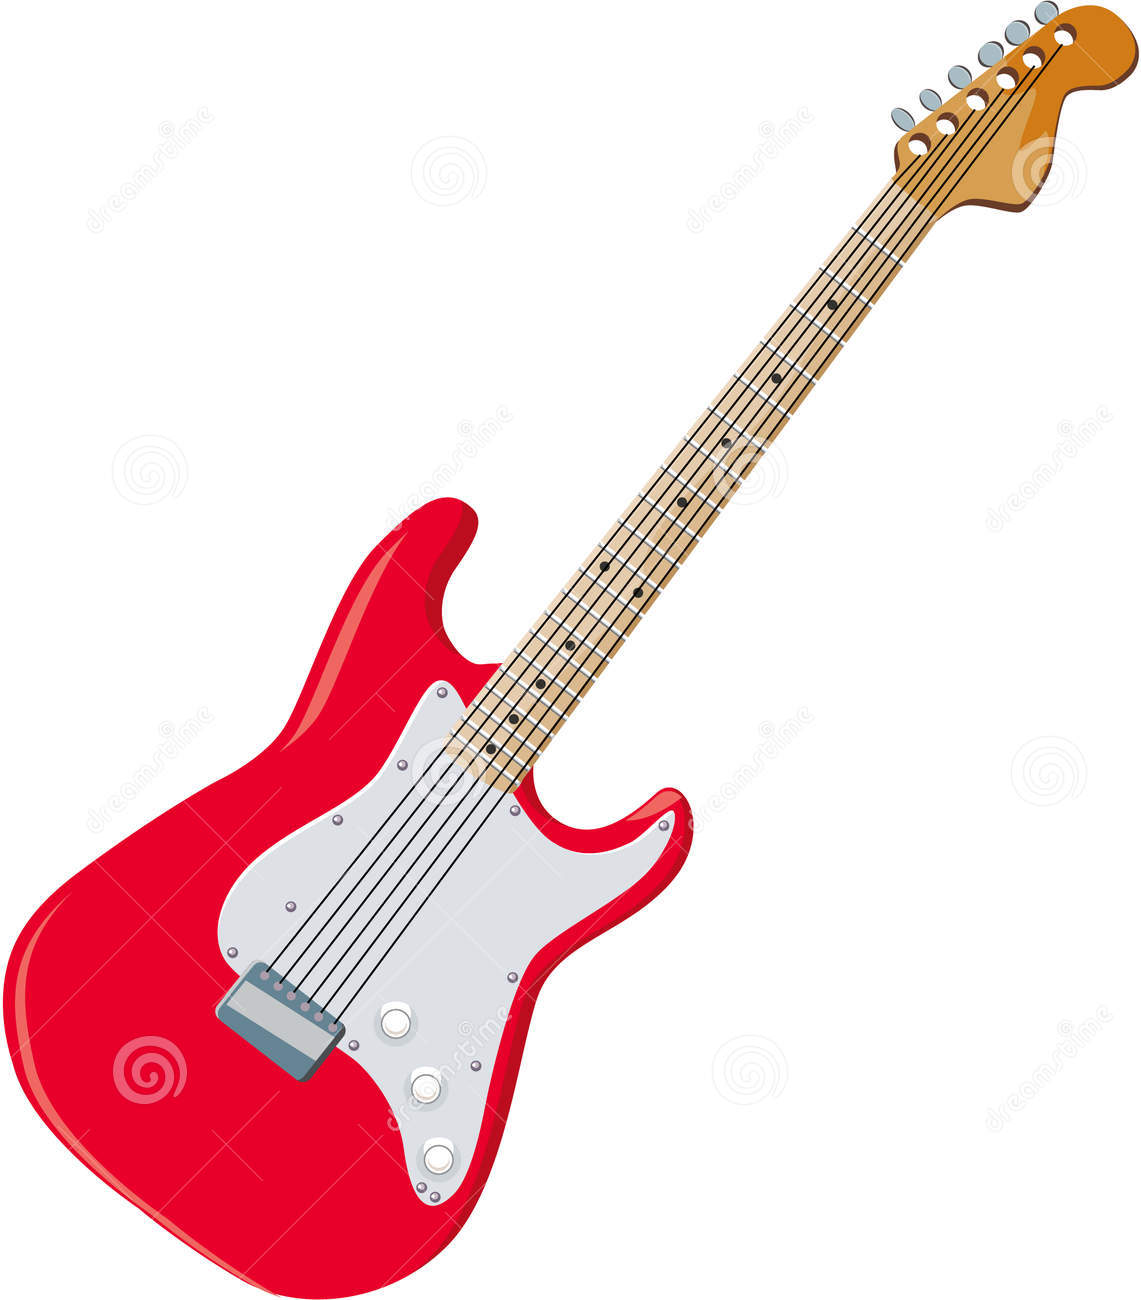 Guitar clipart. Red